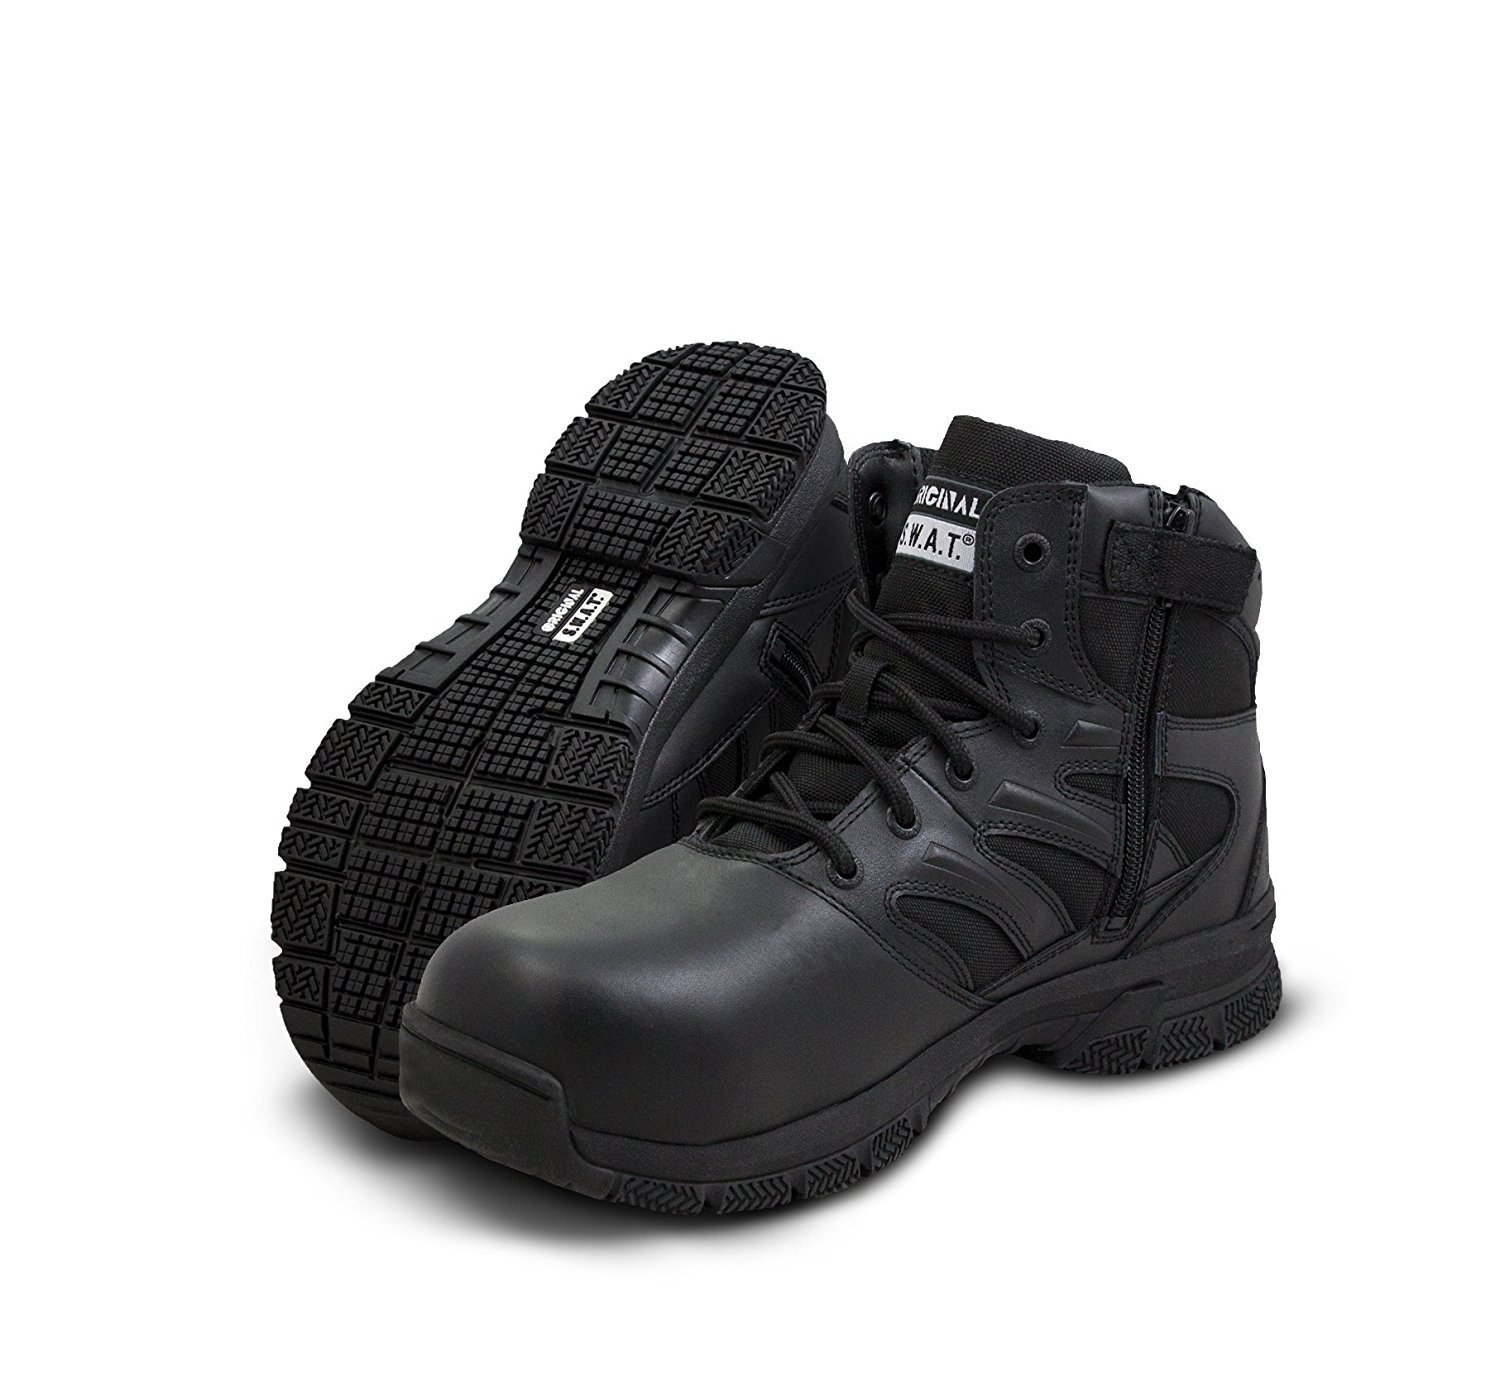 "Original S.W.A.T. Force 6"" Side Zip Safety Men's Tactical Boot - Black"